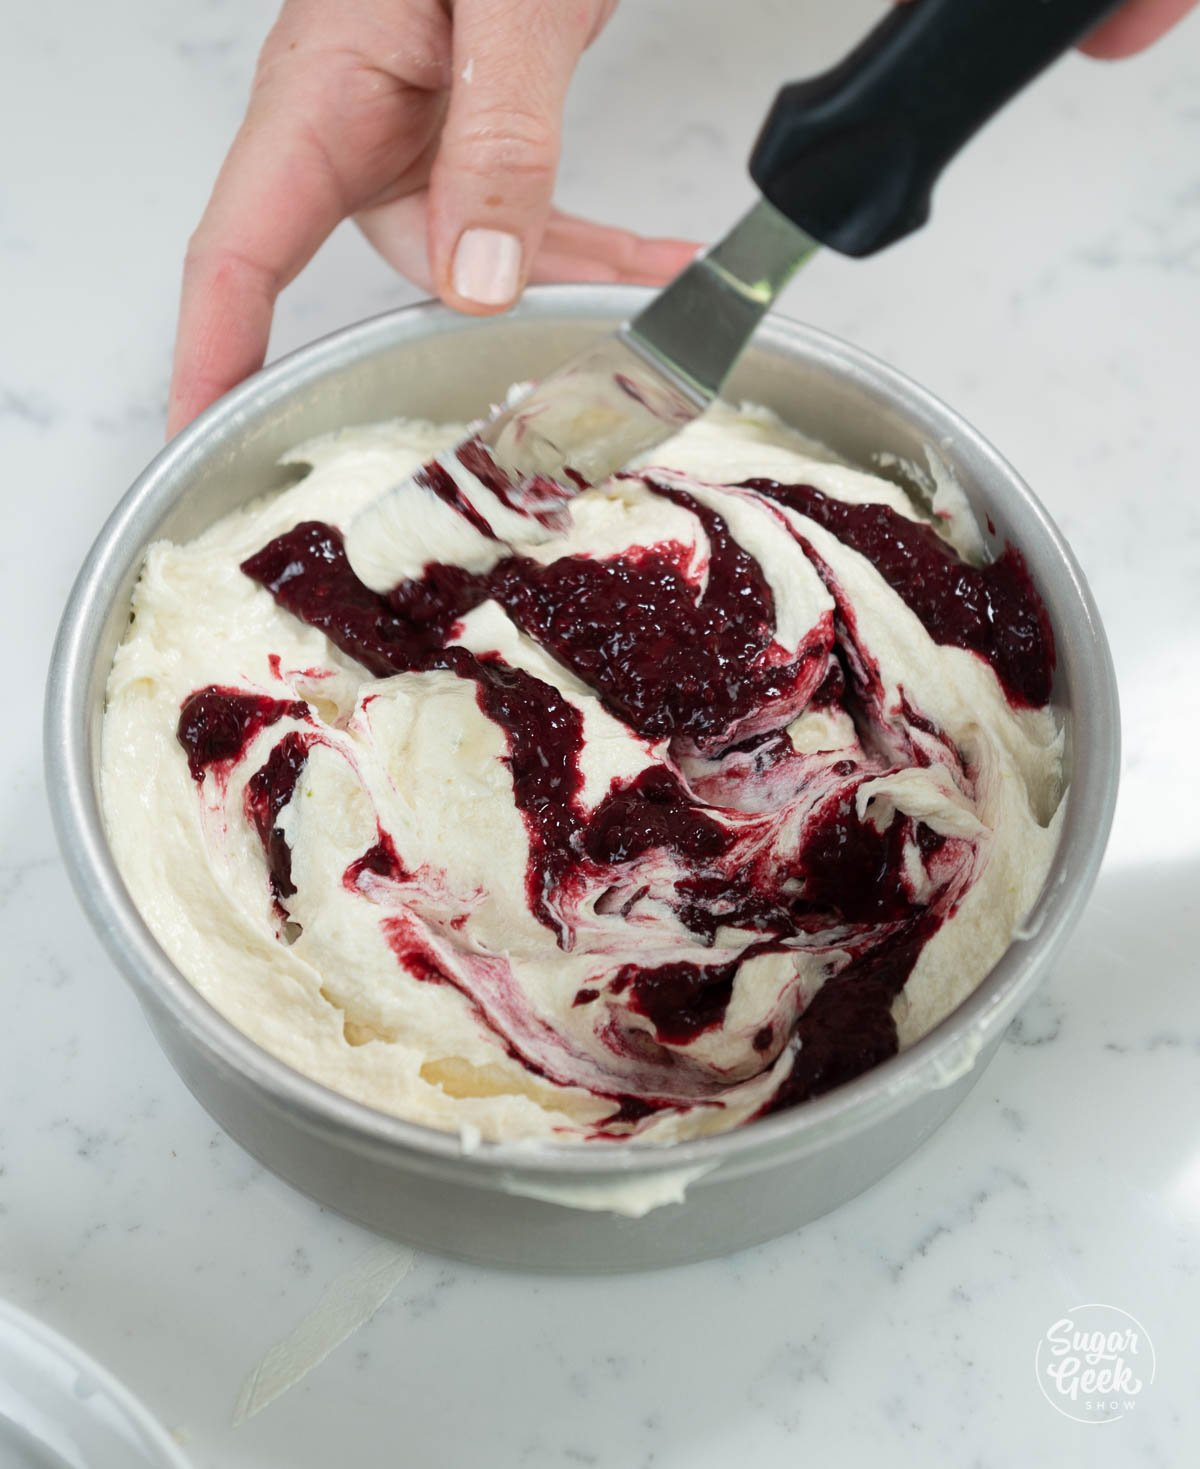 swirling blackberry puree into cake batter in pans